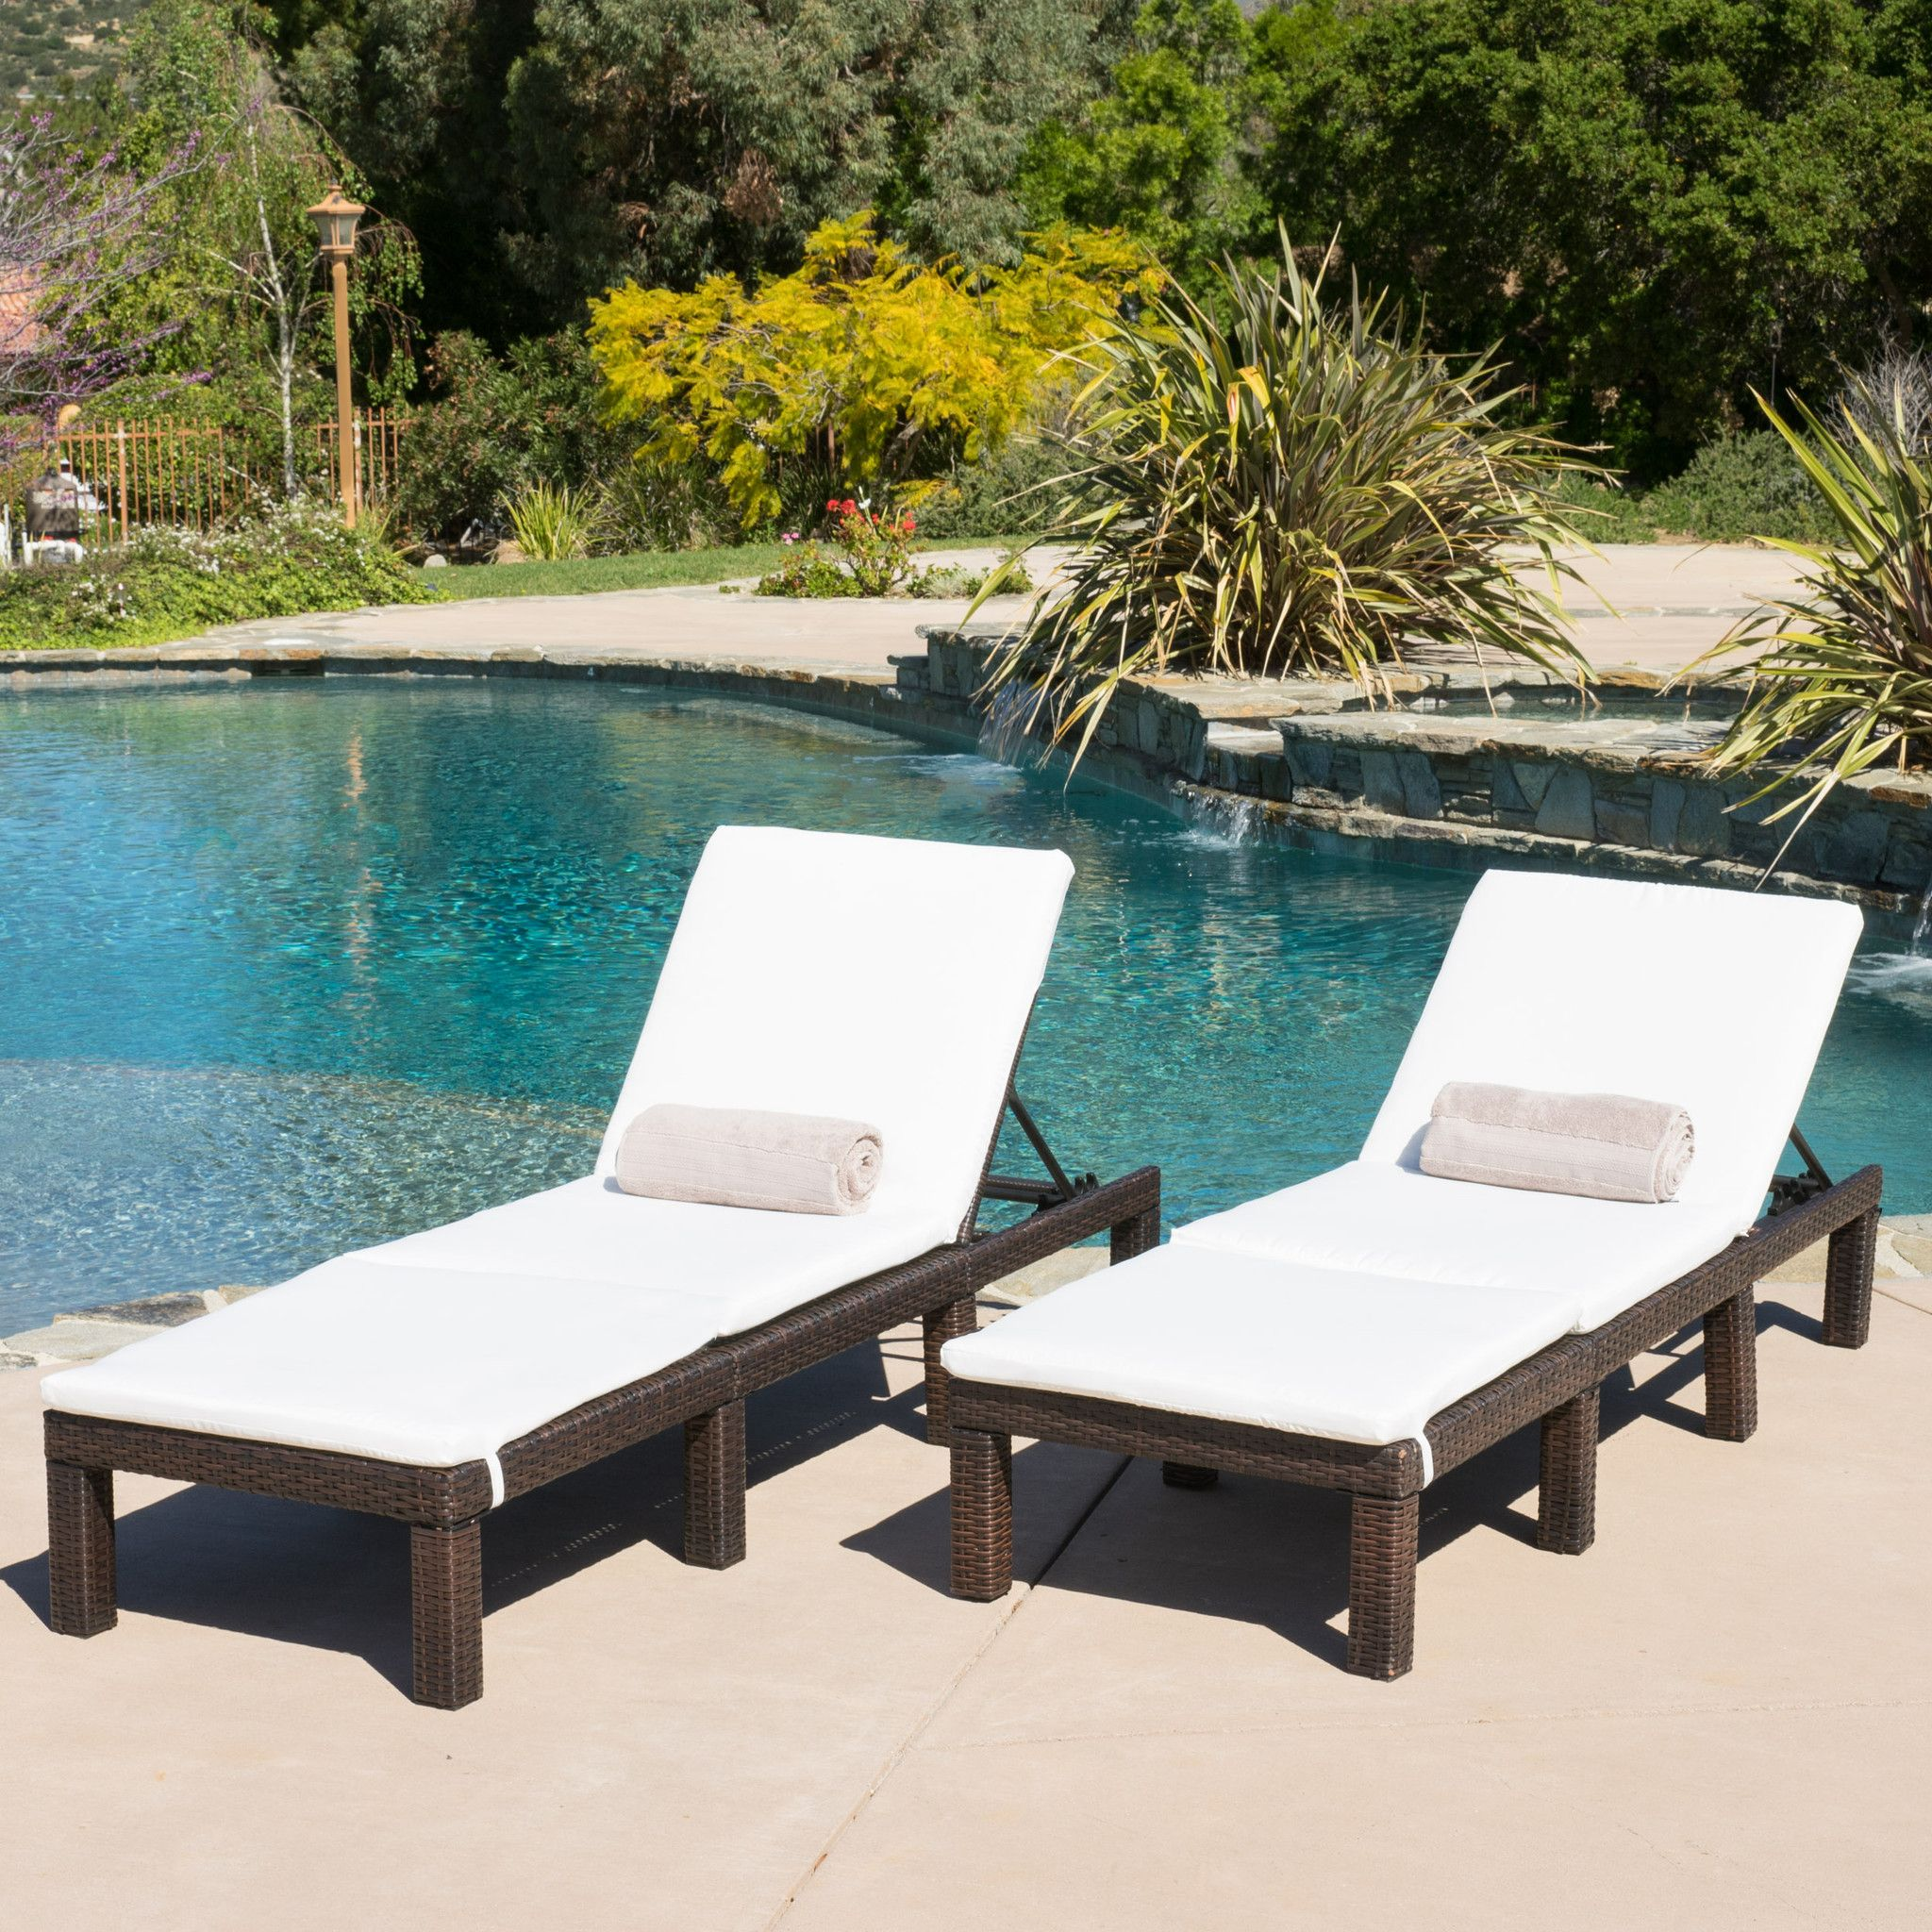 Estrella Outdoor Wicker Adjustable Chaise Lounge Chairs w